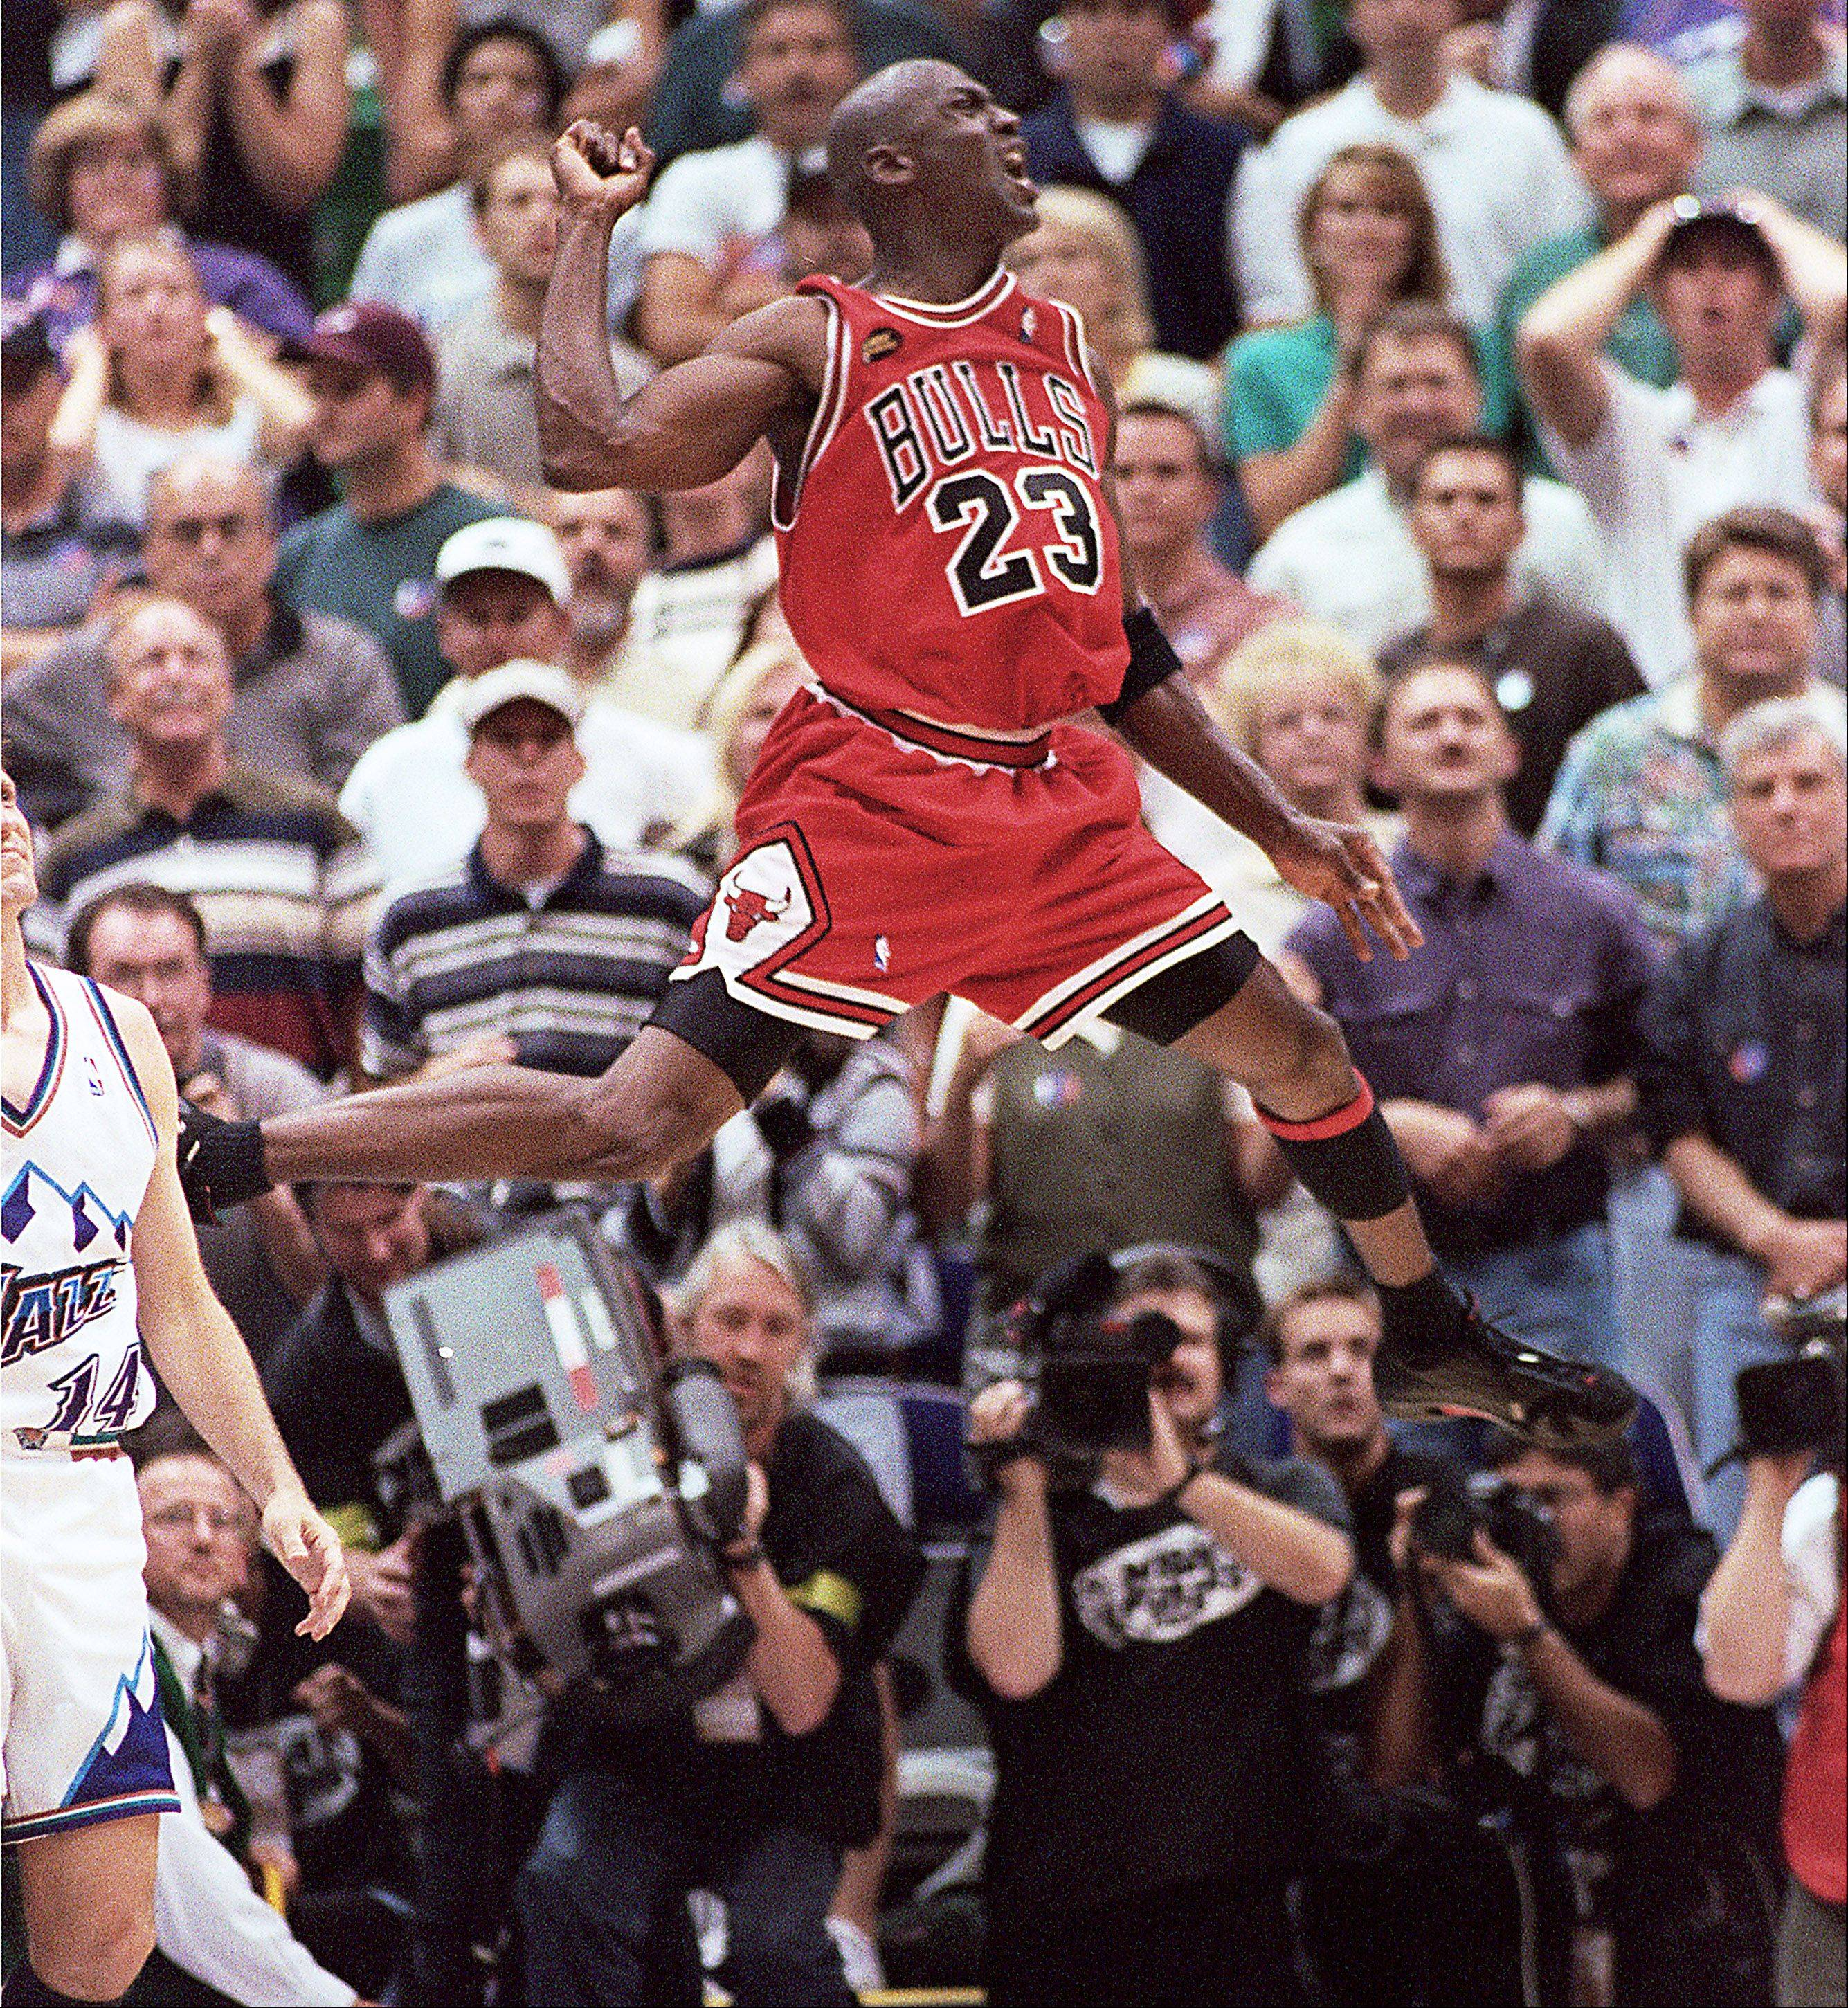 Bulls Michael Jordan jumps for joy, as the Bulls win their sixth championship against the Utah Jazz in Utah.